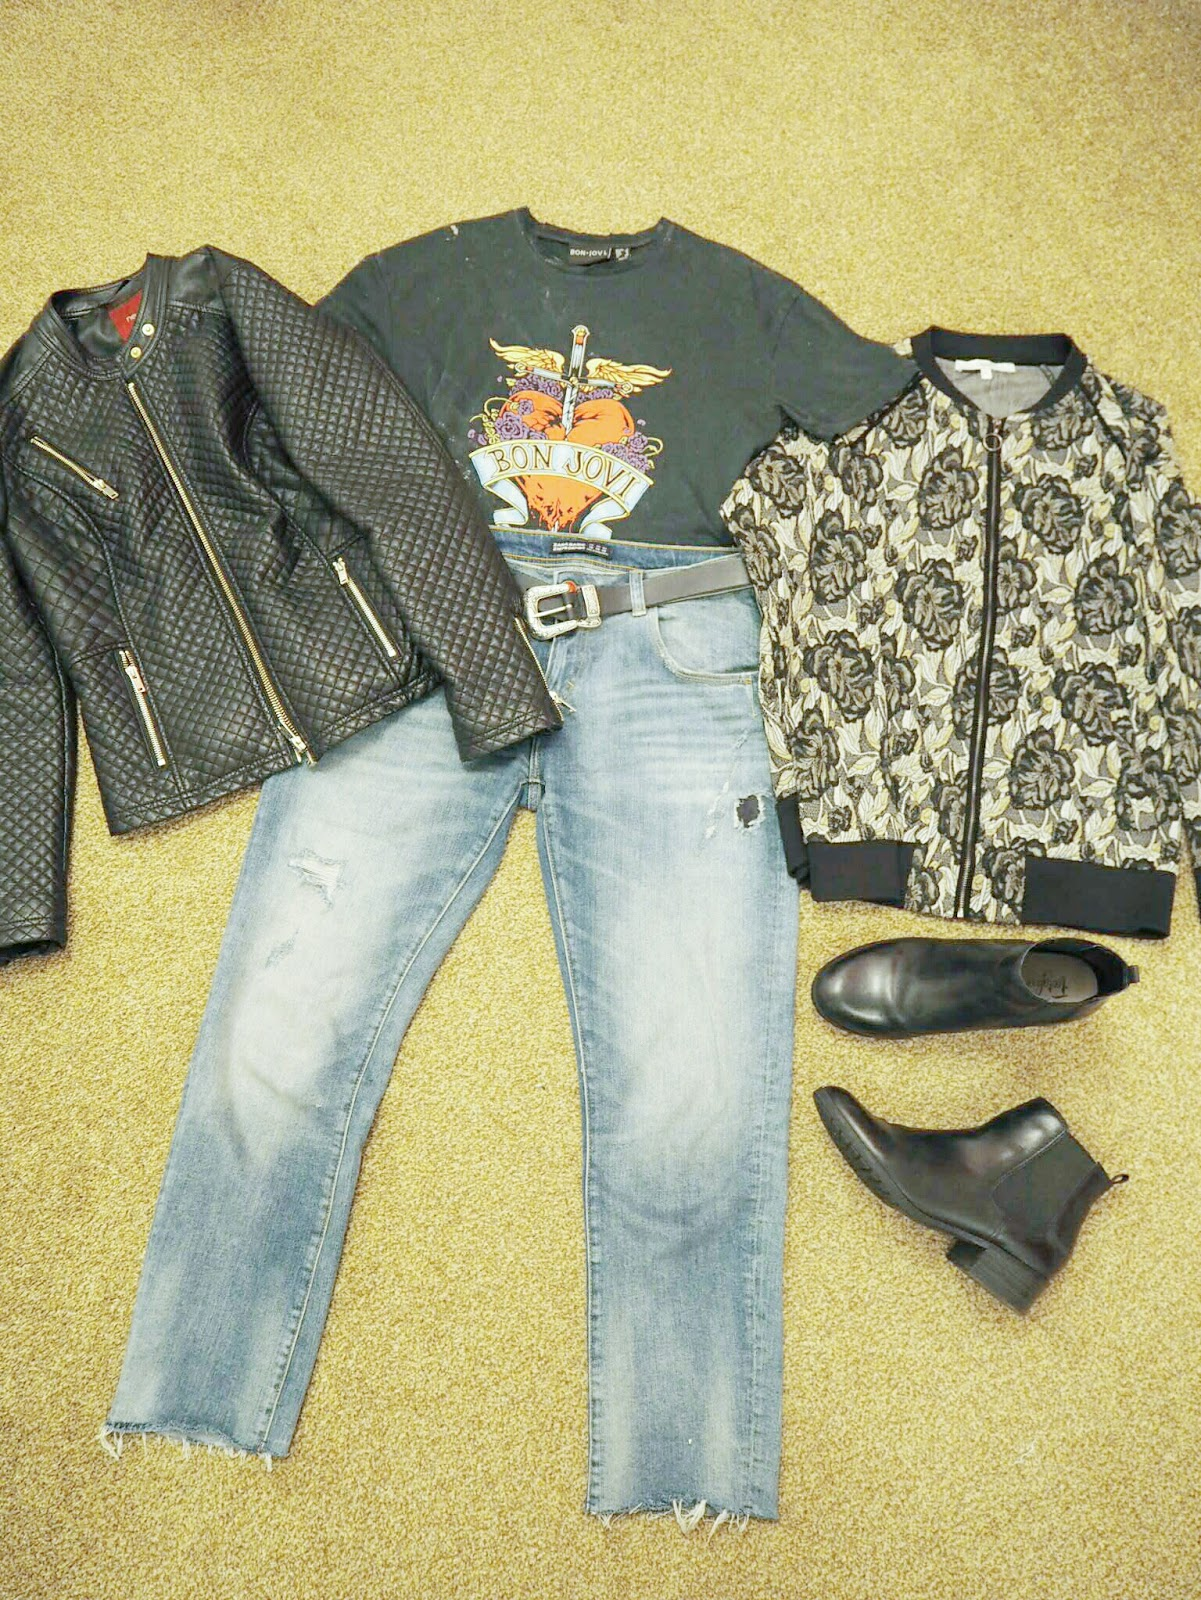 Bon Jovi T-shirt, Next leather jacket, zara jeans